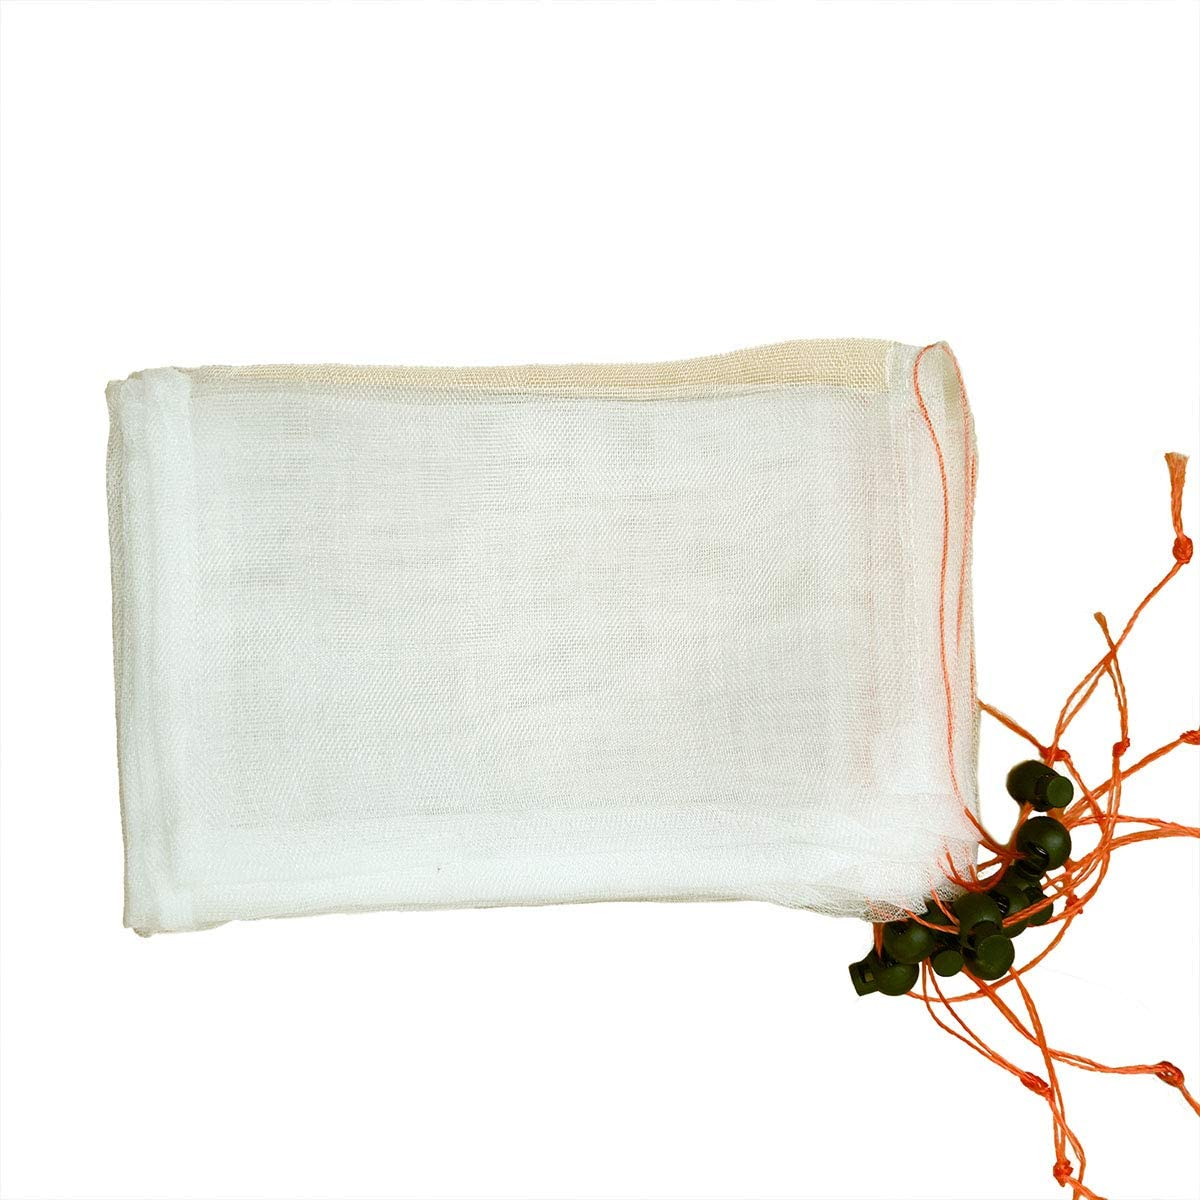 HHTHH Garden Netting Bags with Drawstring and Cord Lock for Fruits and Vegetables (50 pcs, 10 X 14 inch)